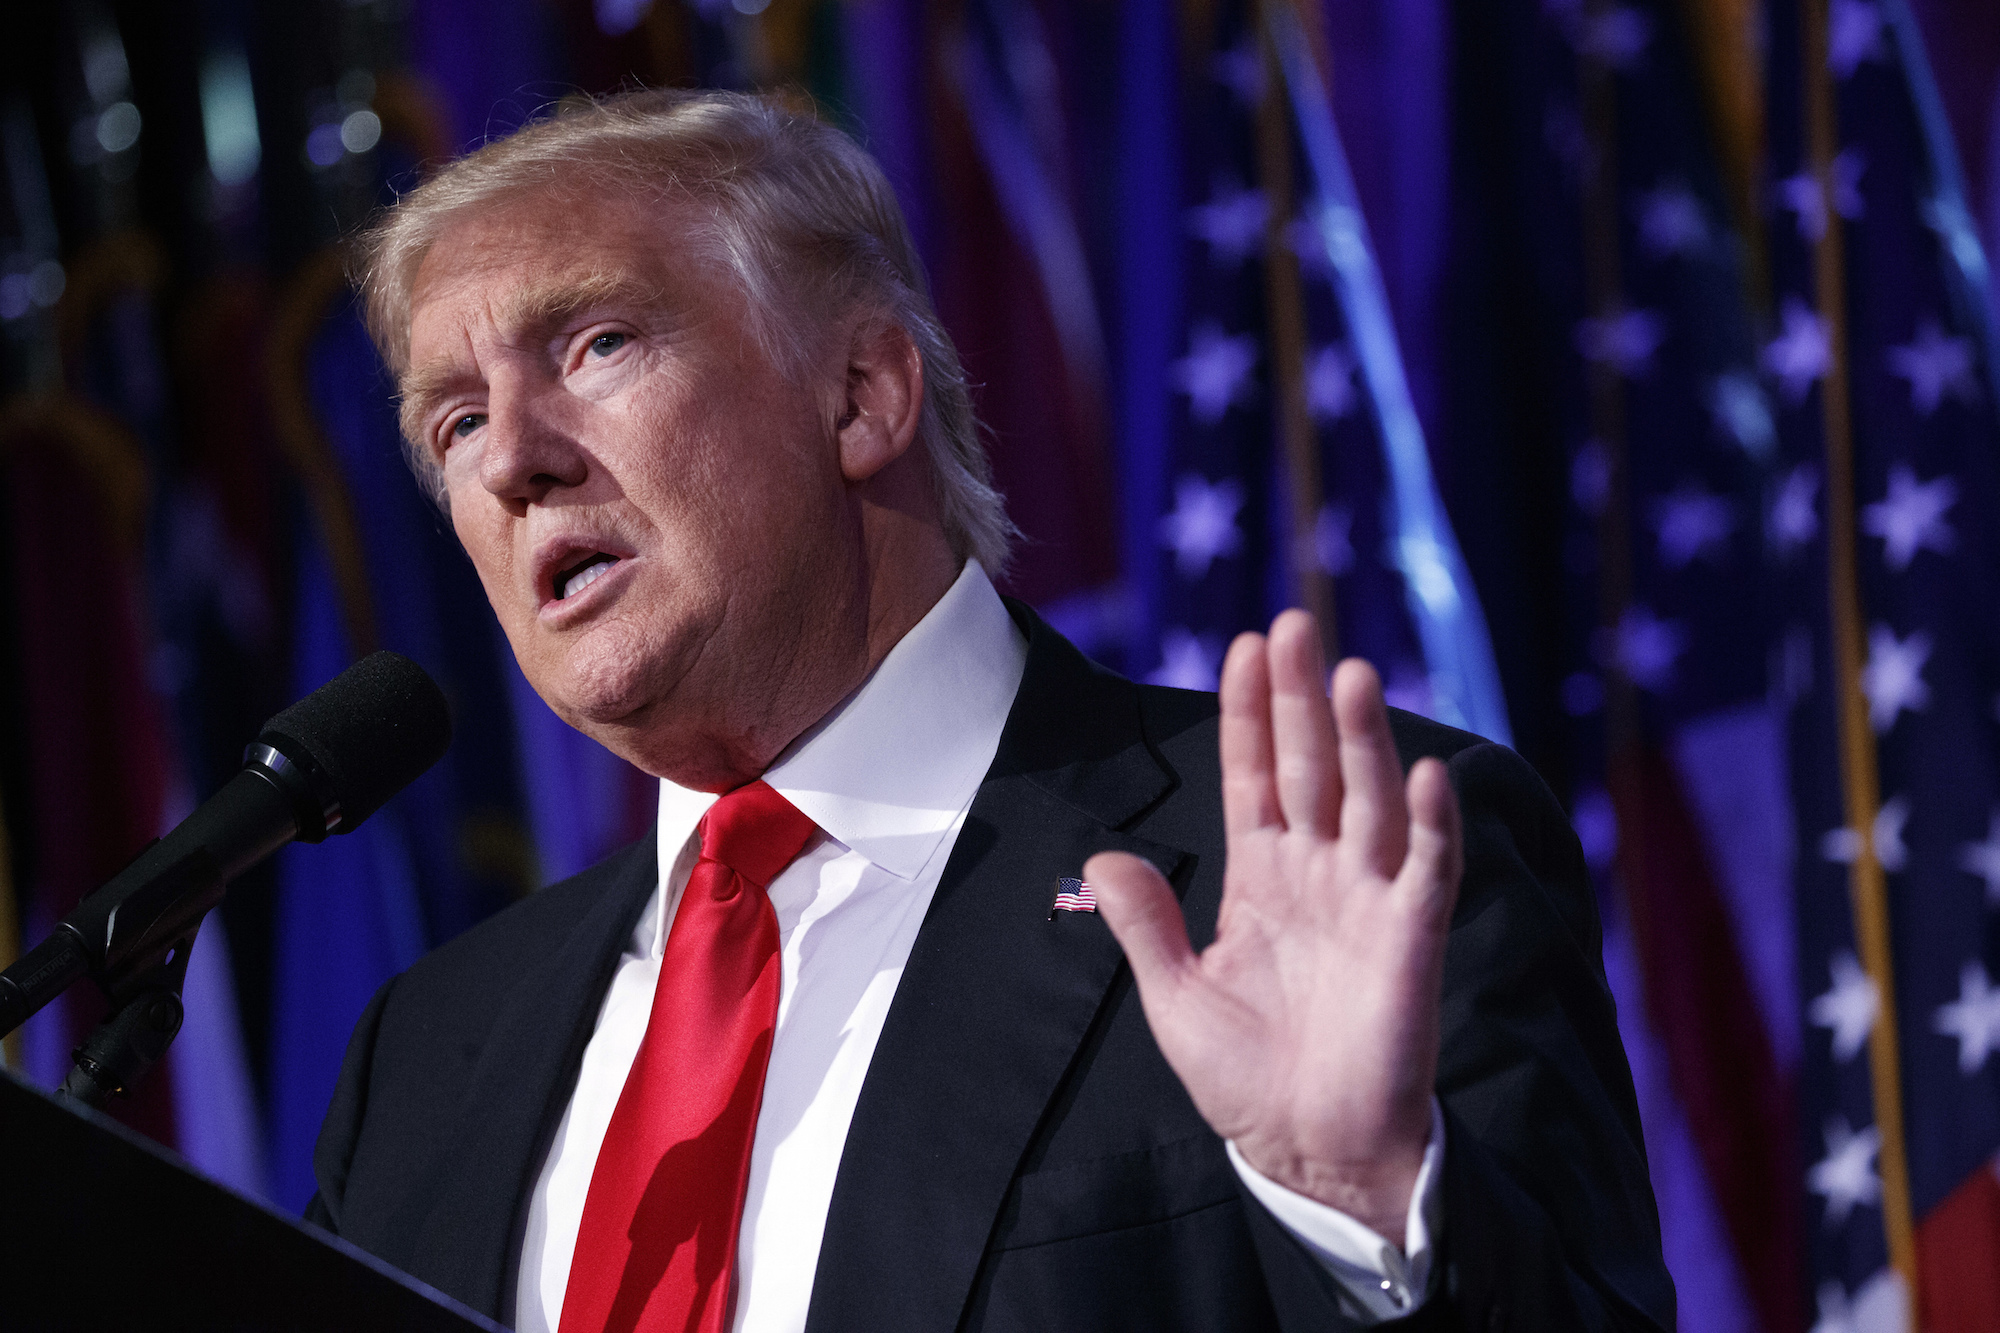 President-elect Donald Trump at an election rally on November 9th in New York. Trump is likely to stir more conflicts in the Middle East causing Americans to fight against ISIS. (Evan Vucci/AP Exchange)